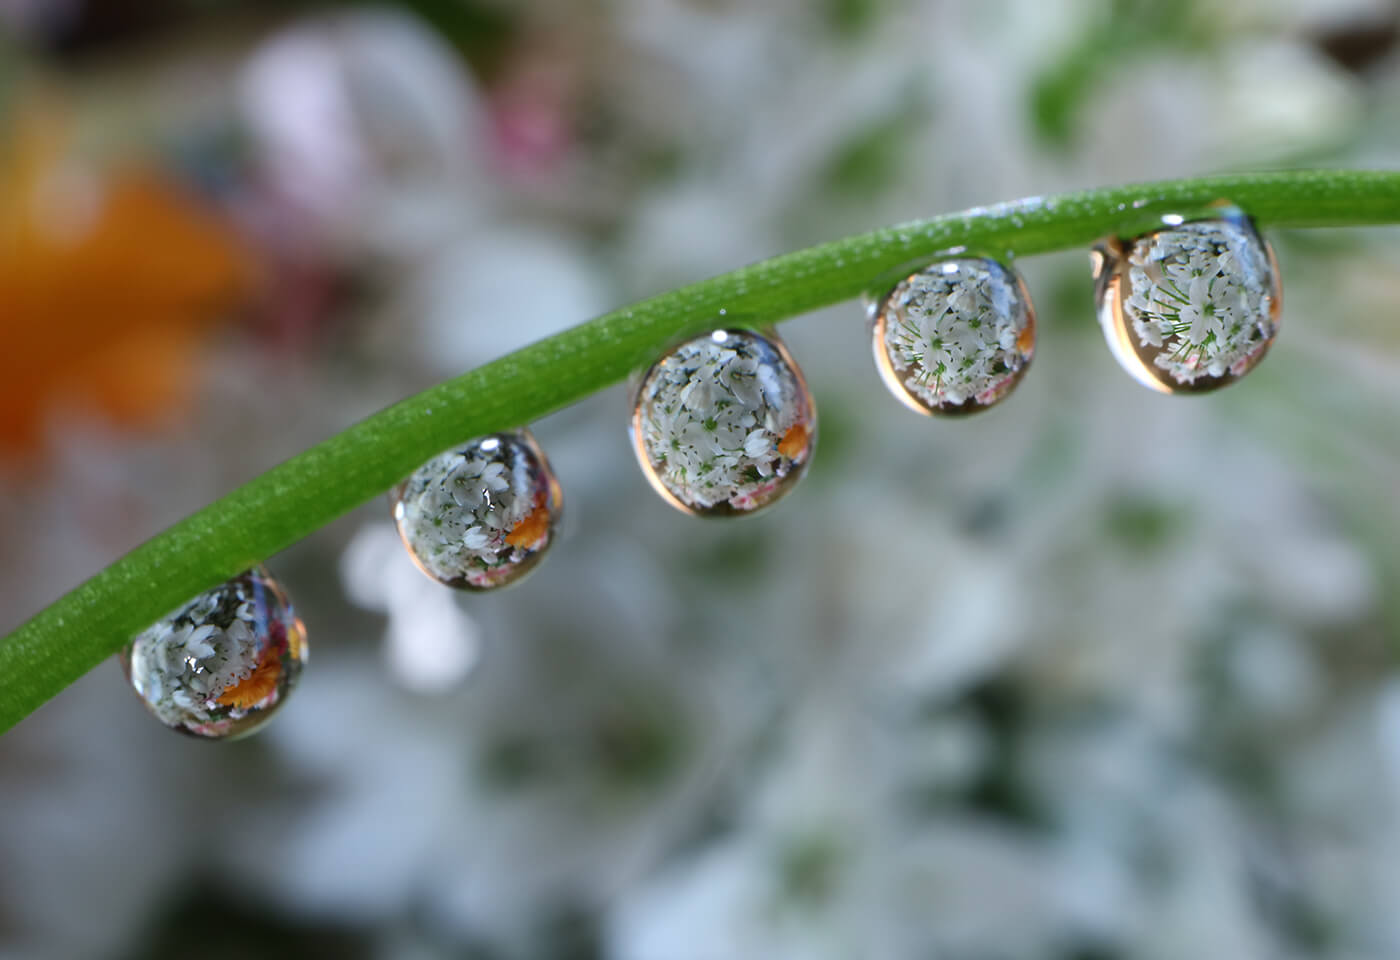 Close up of raindrops on a flower stem